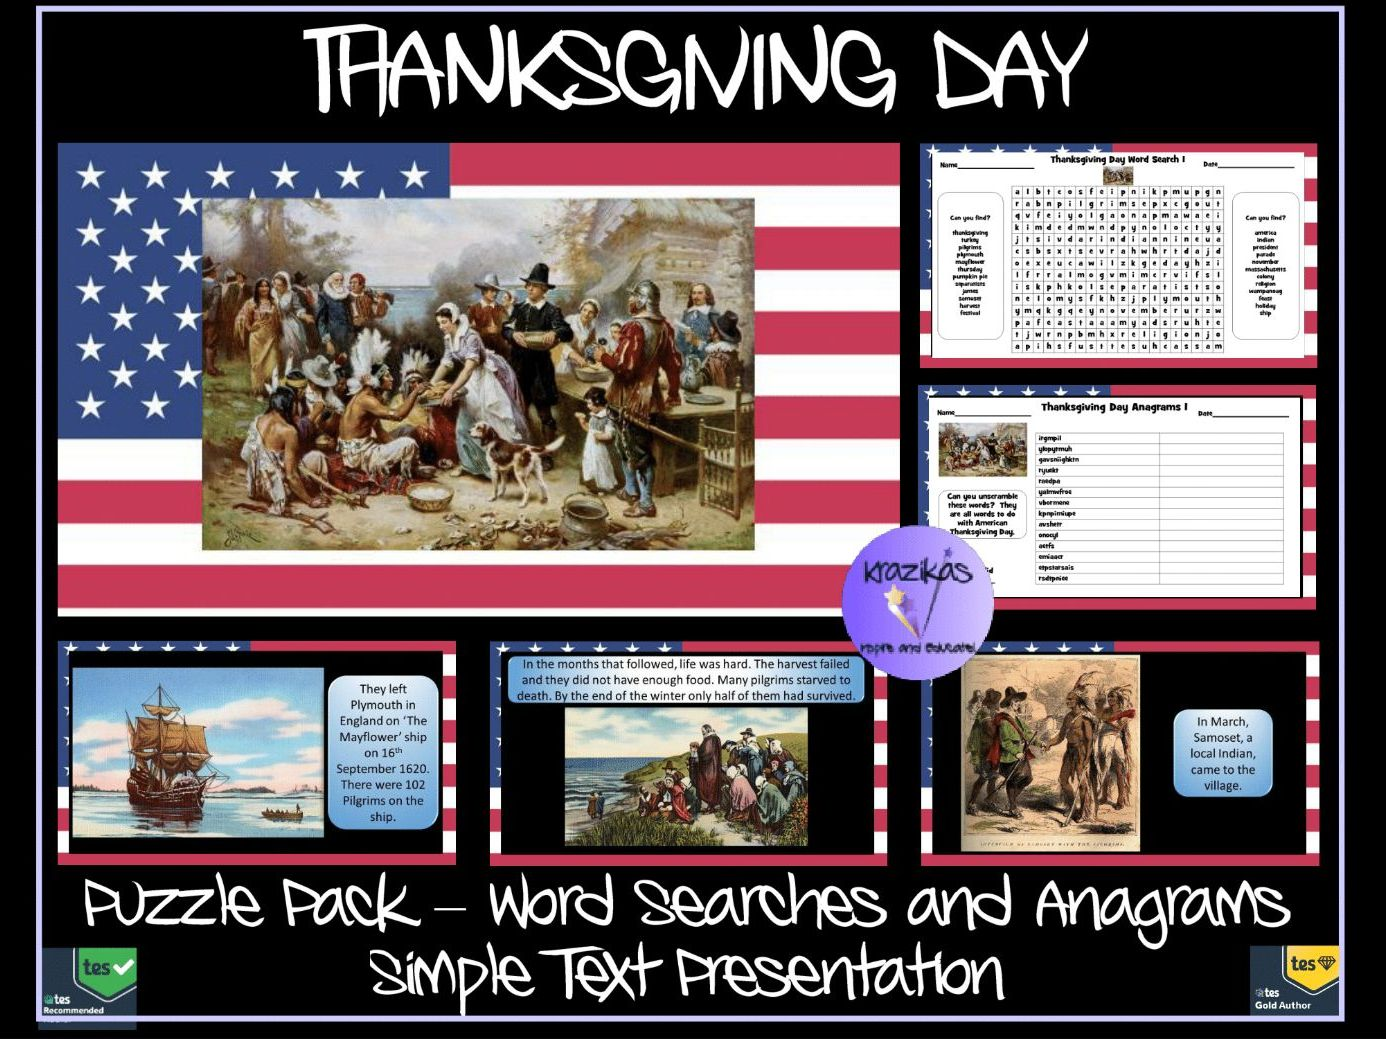 Thanksgiving Day Simple Text Presentation and Puzzle Pack Bundle